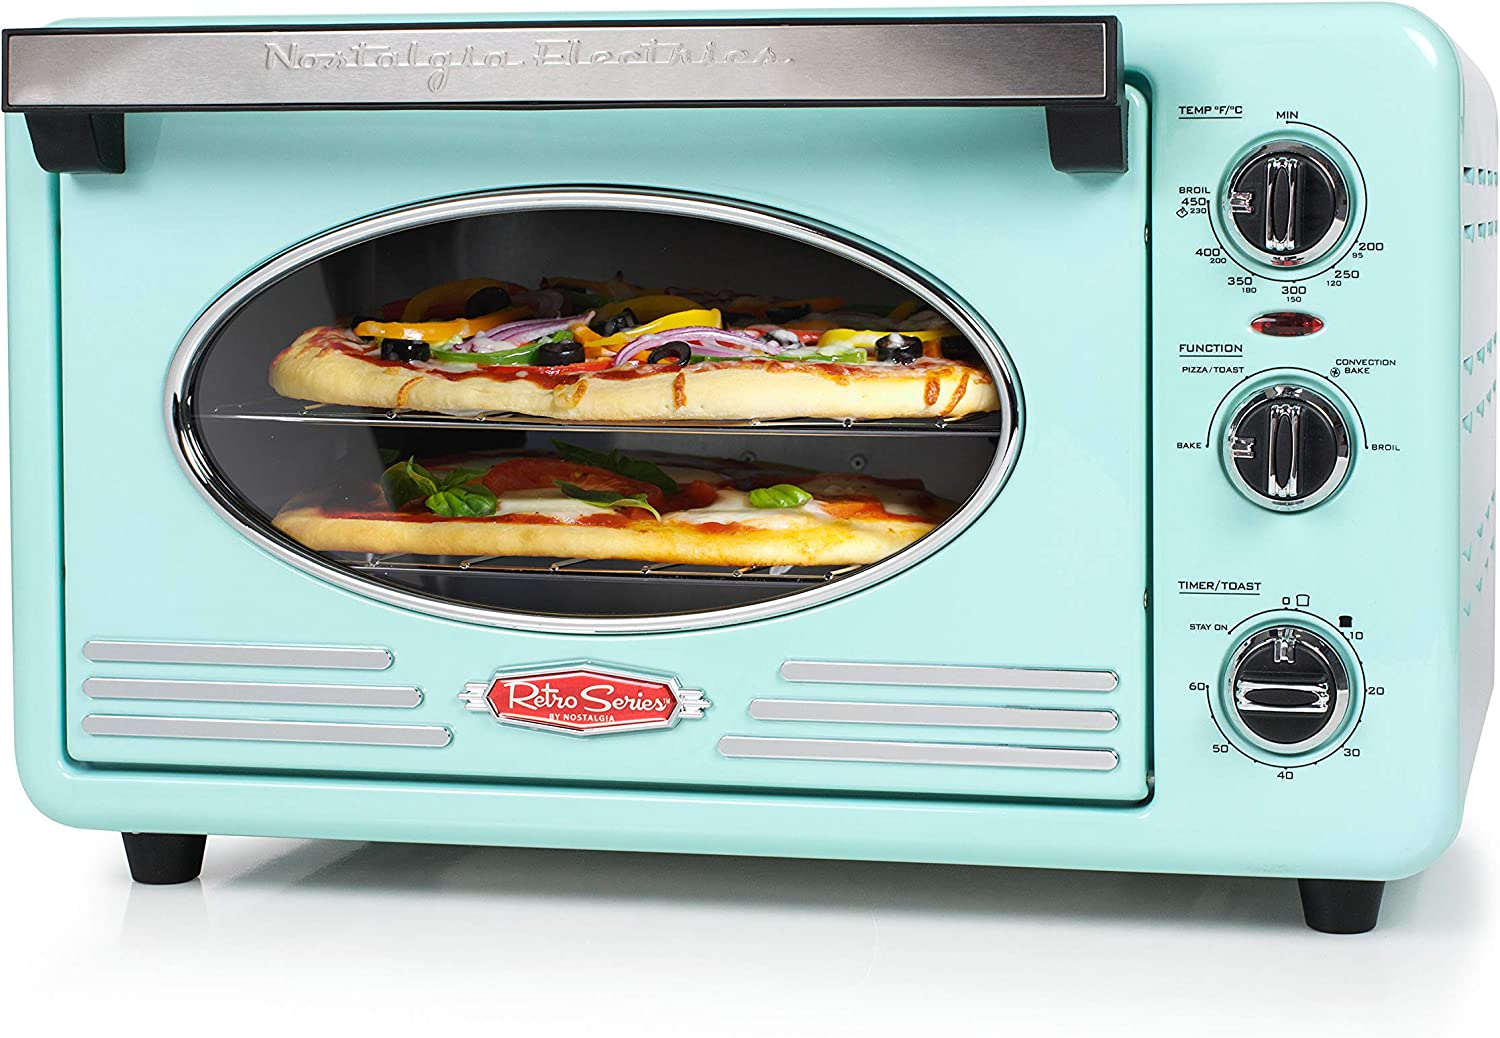 Nostalgia RTOV2AQ Large-Capacity 0.7-Cu. Ft. Capacity Multi-Functioning Retro Convection Toaster Oven, Fits 12 Slices of Bread and Two 12-Inch Pizzas, Built In Timer, Includes Baking Pan,Aqua